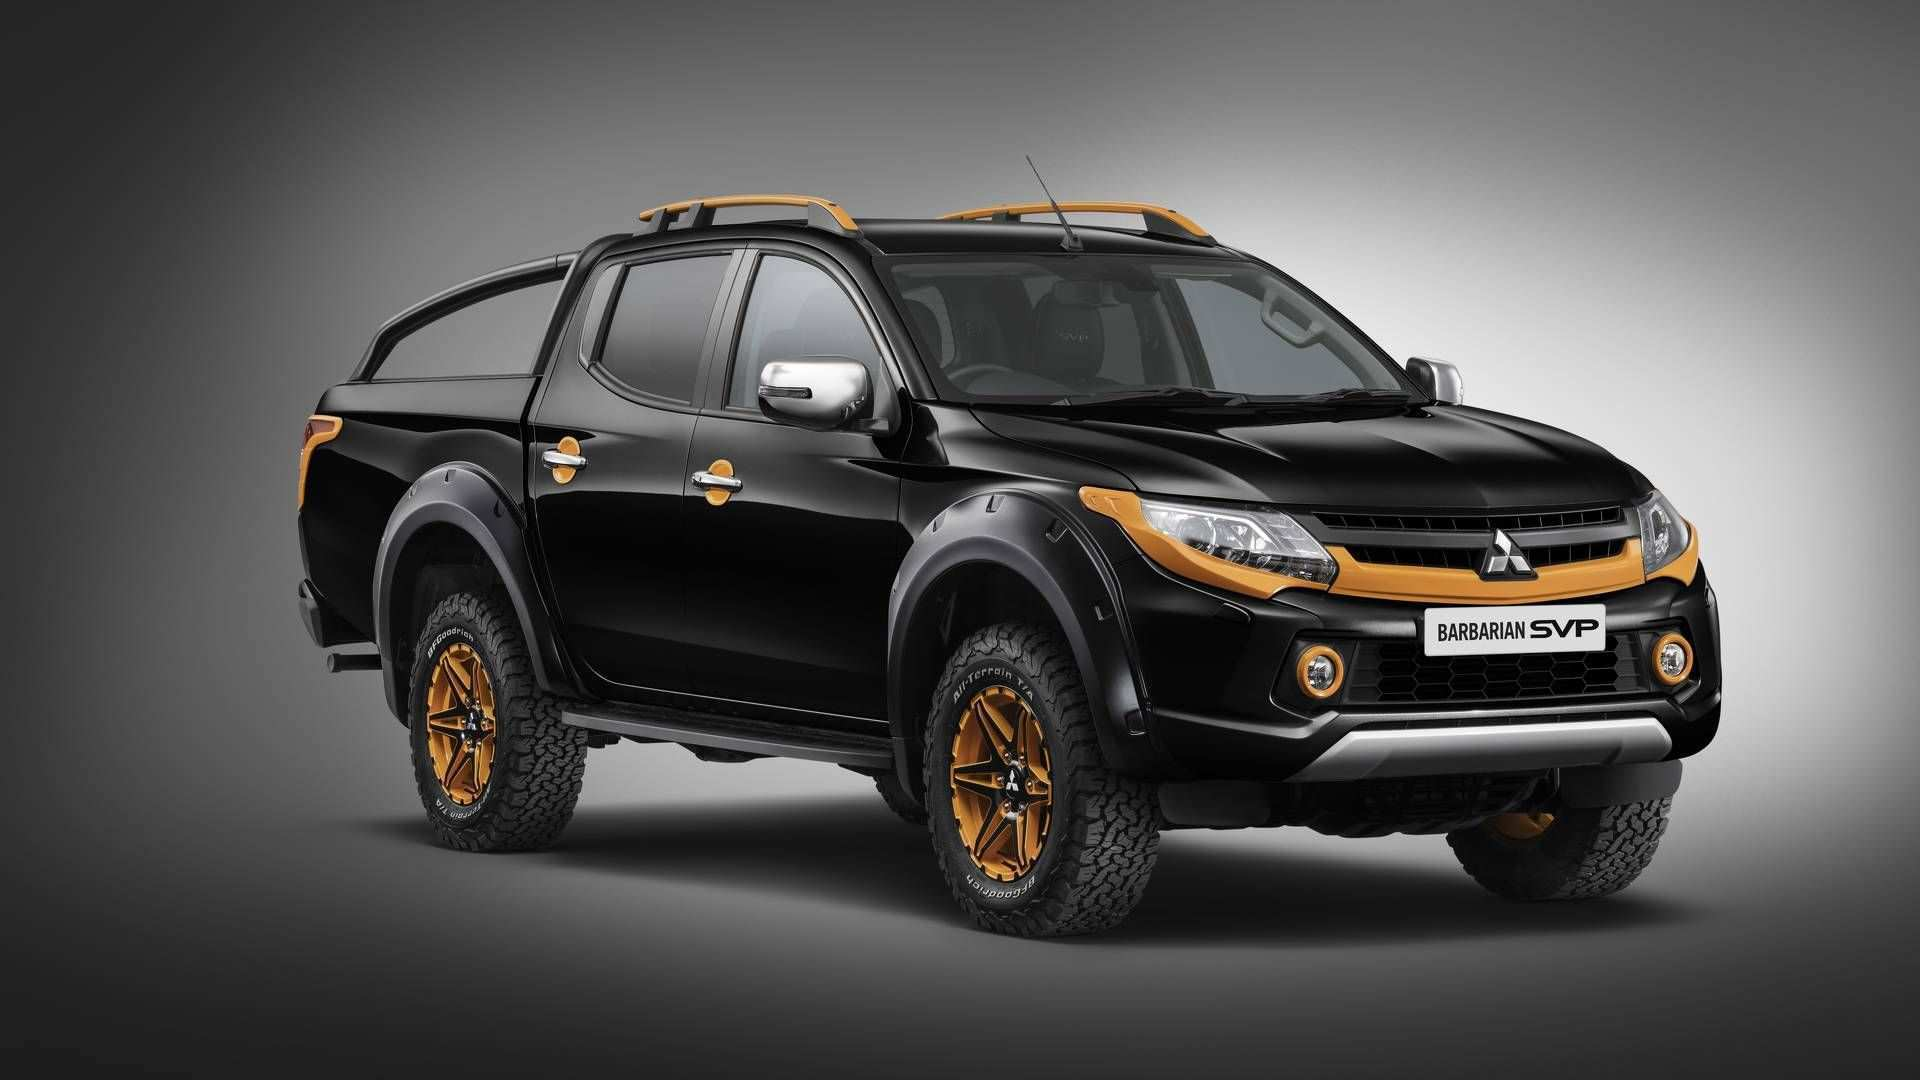 26 Best Review 2020 Mitsubishi L200 2018 Specs with 2020 Mitsubishi L200 2018